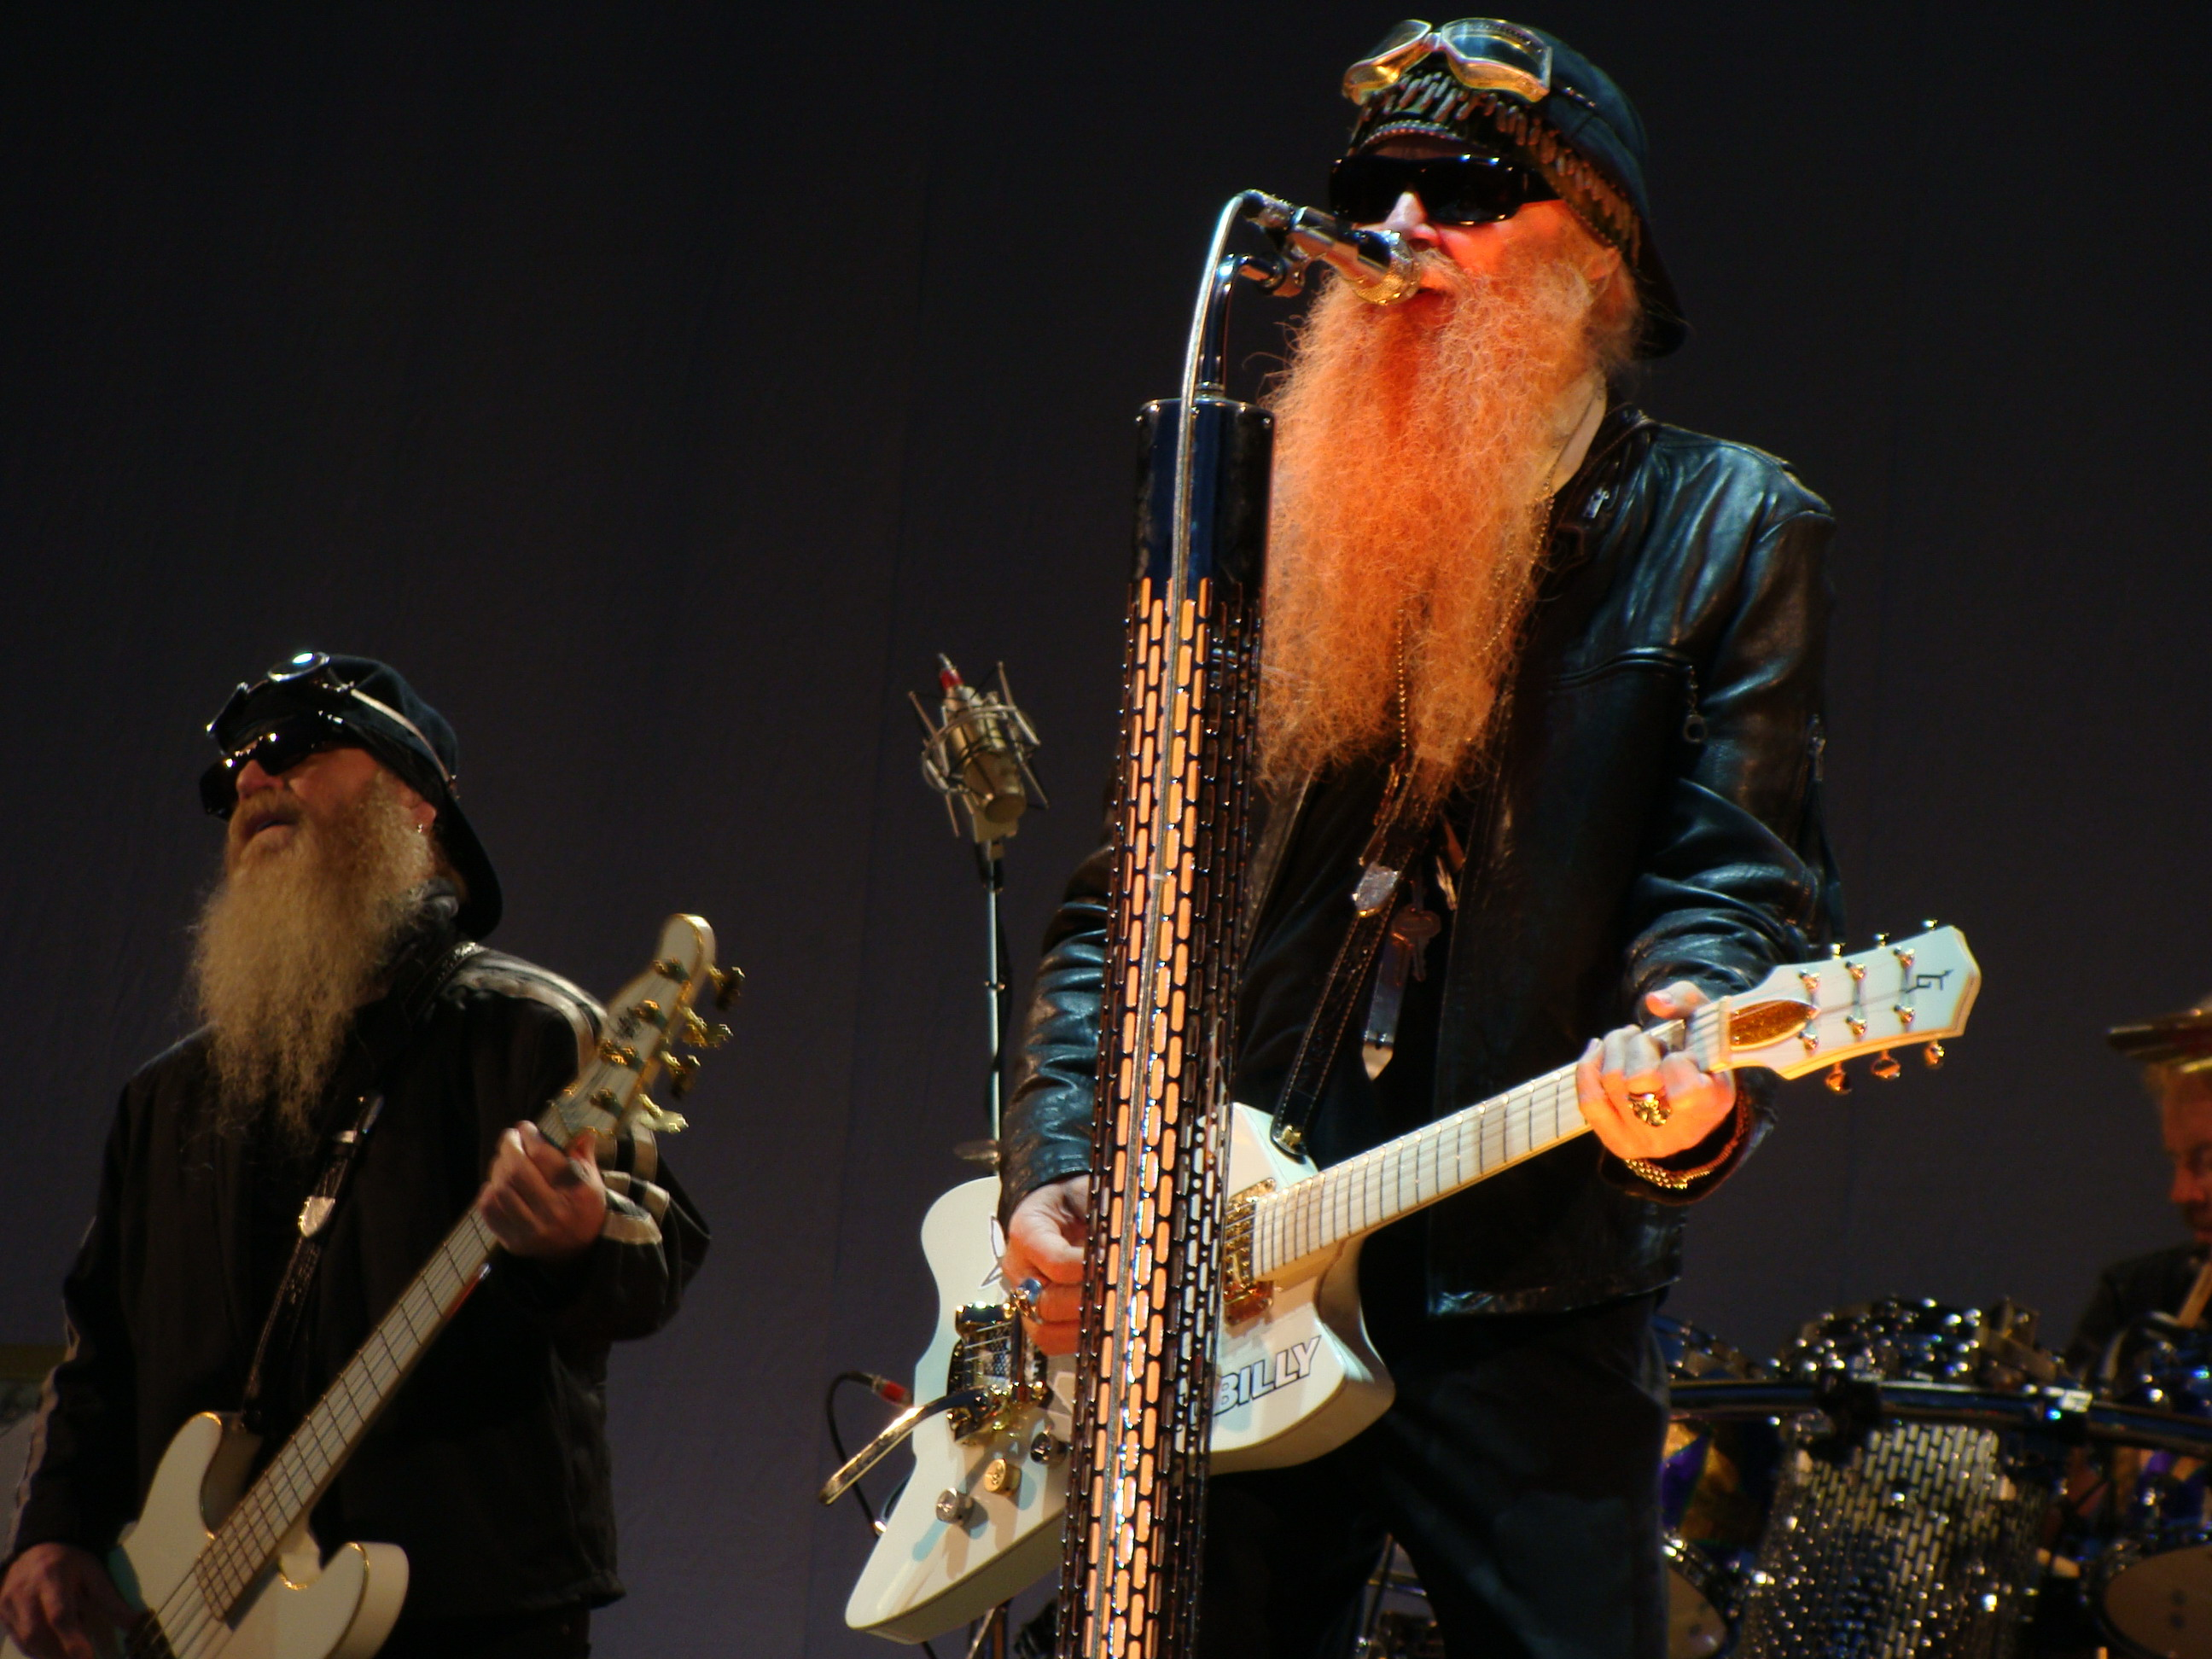 Zz top iphone wallpaper - Hd Wallpaper Background Id 406221